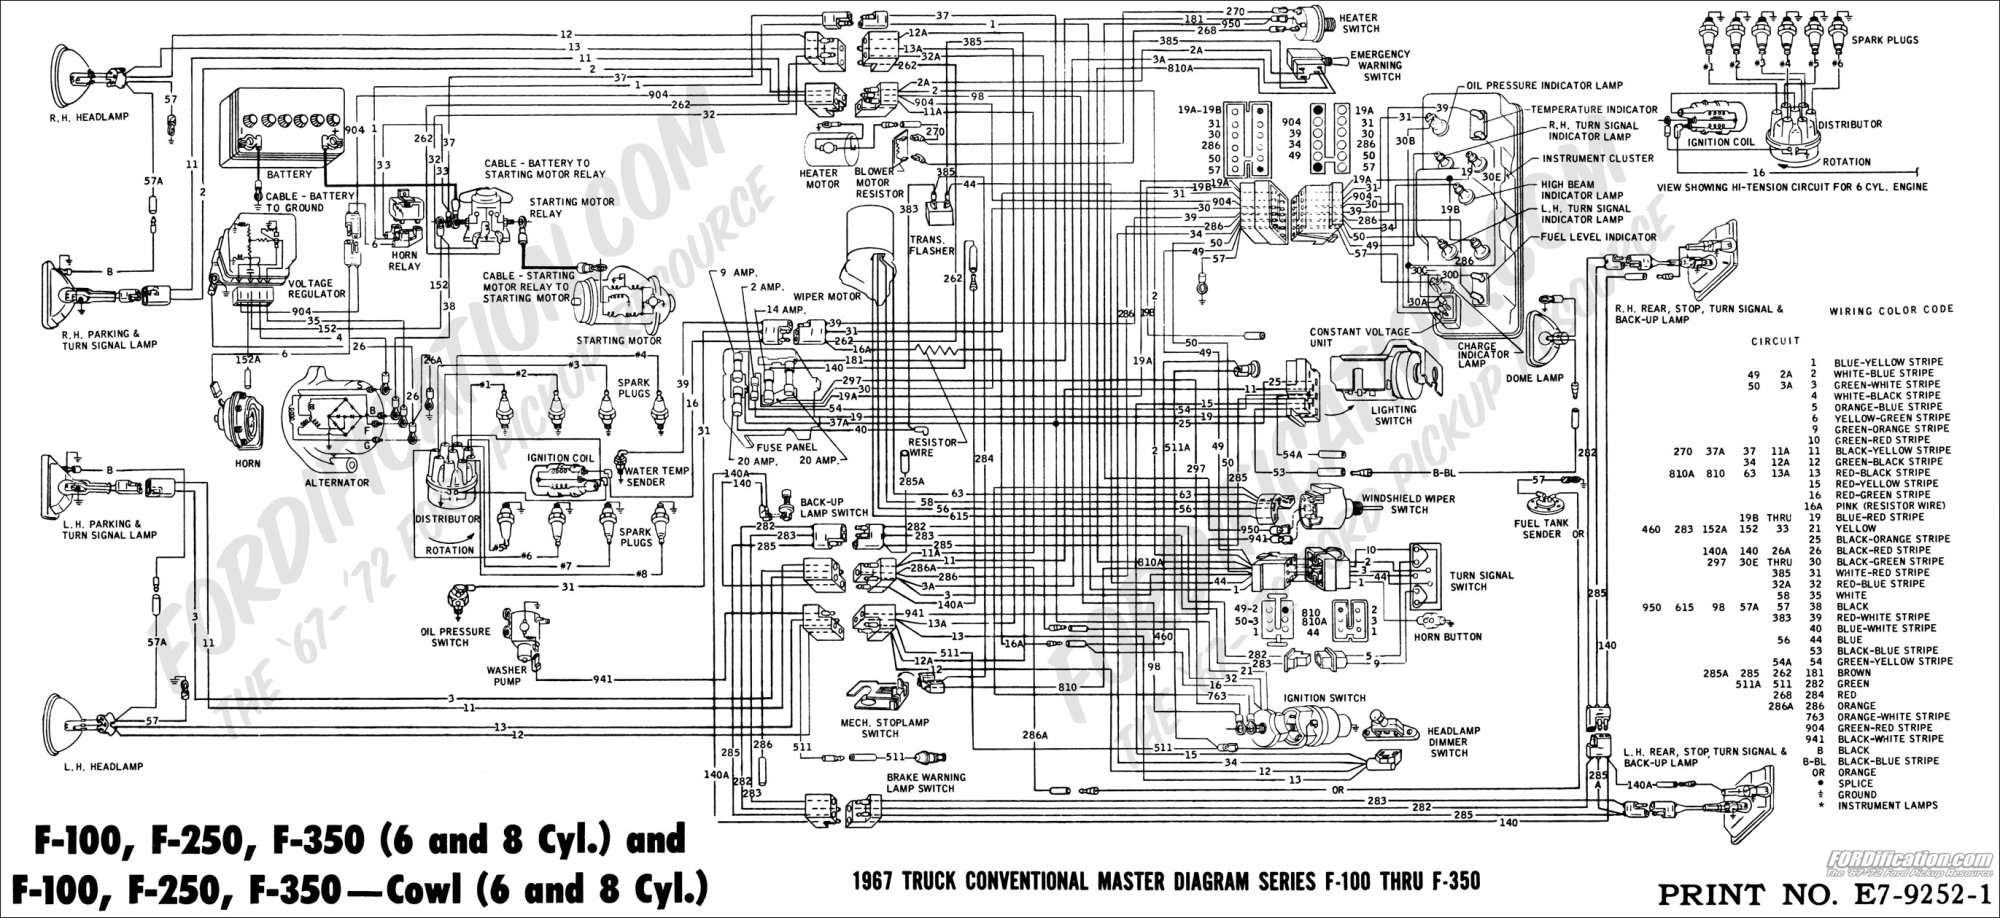 hight resolution of 1991 f350 wiring diagram wiring diagrams 2008 ford f350 wiring diagram 1991 ford e 350 e4od